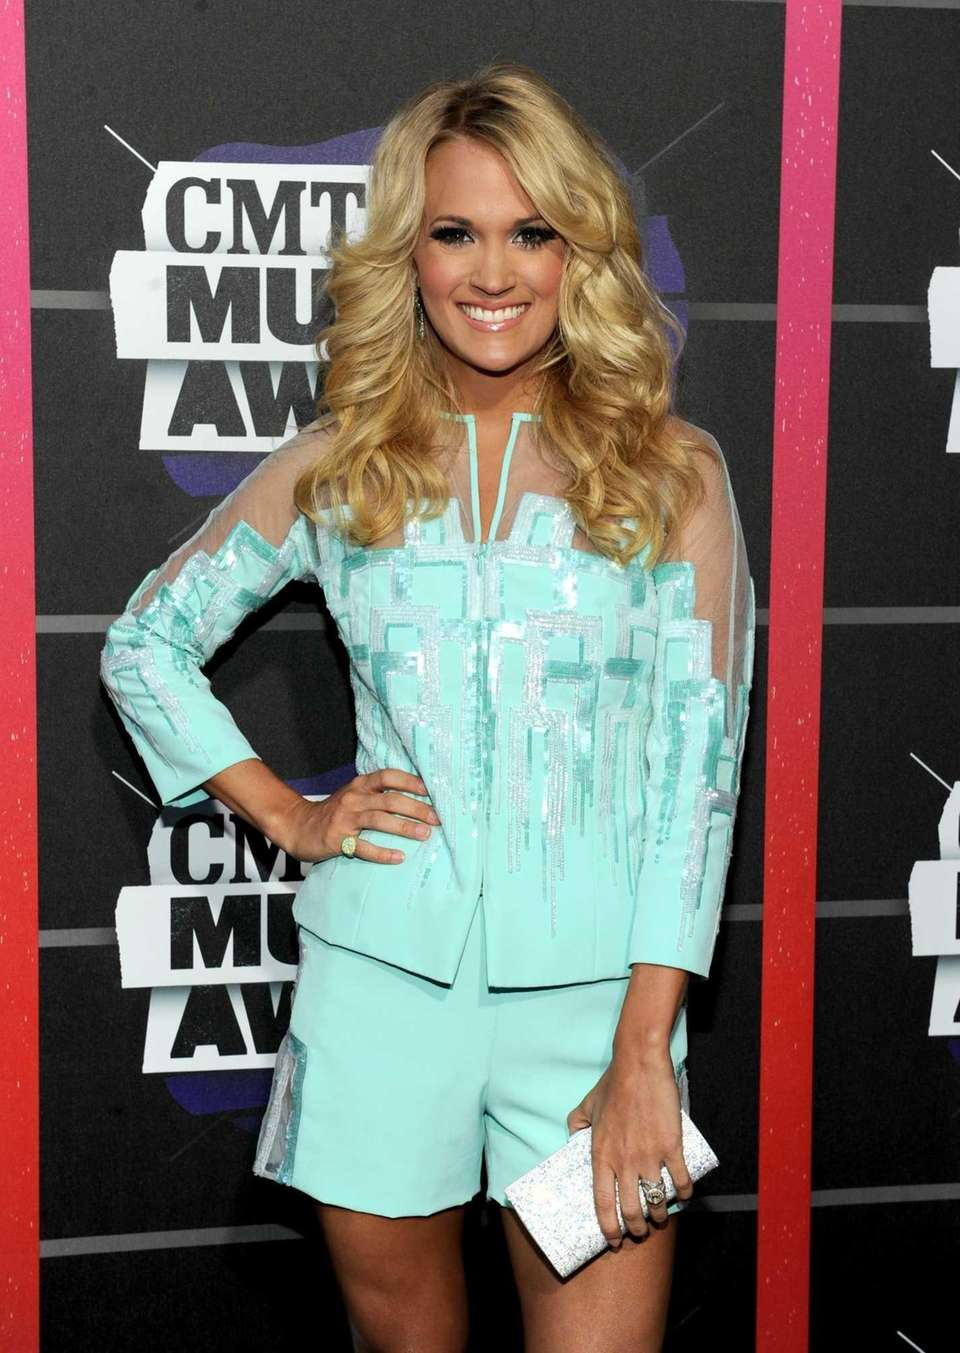 Country music star Carrie Underwood's popularity grew after